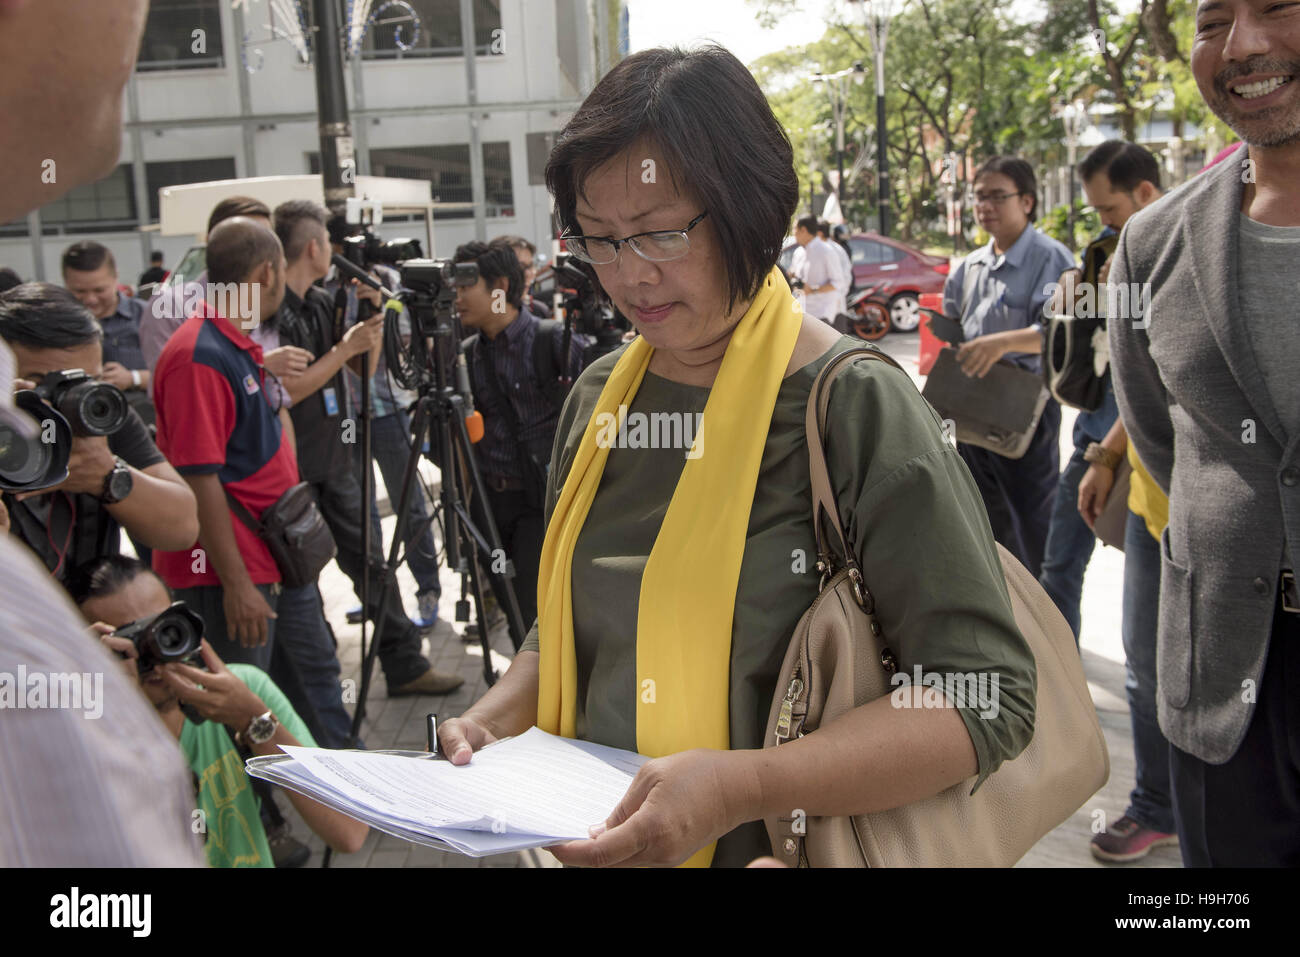 October 20, 2016 - Maria Chin Abdullah(60), chairperson of the coalition of Malaysian NGOs and activist groups known - Stock Image